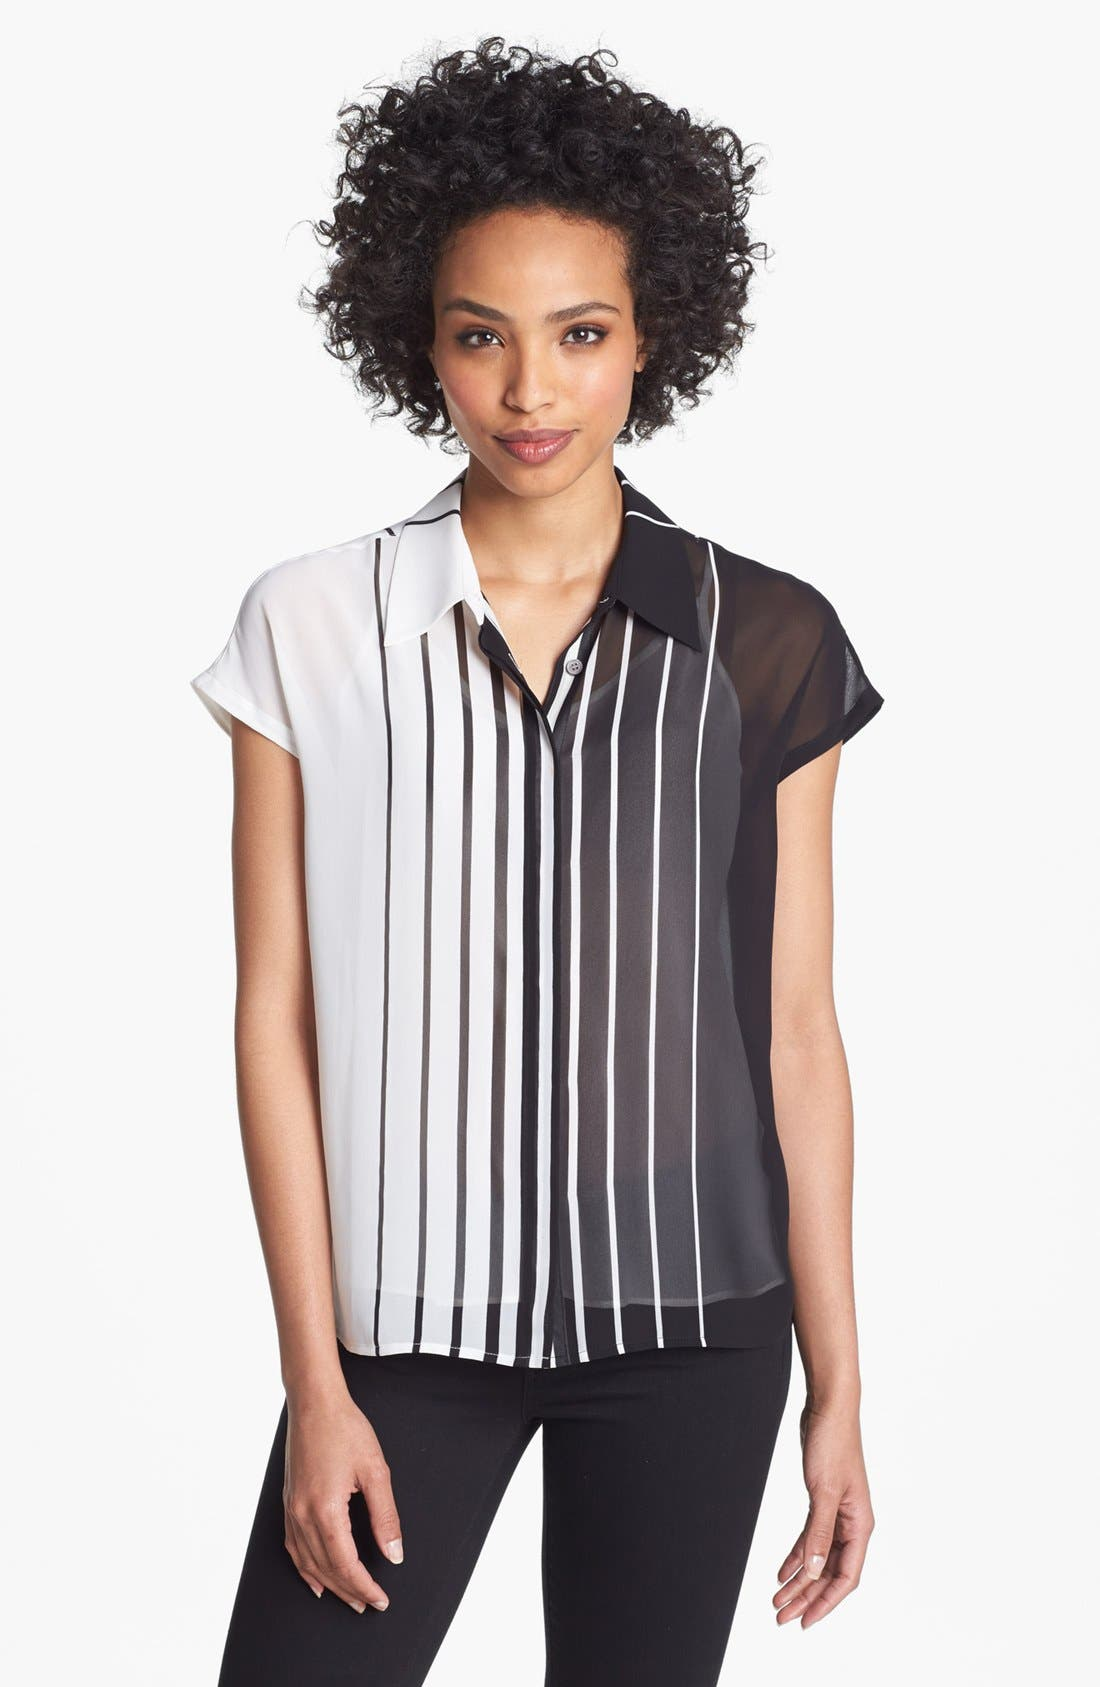 Alternate Image 1 Selected - Vince Camuto Stripe Short Sleeve Blouse (Plus Size)